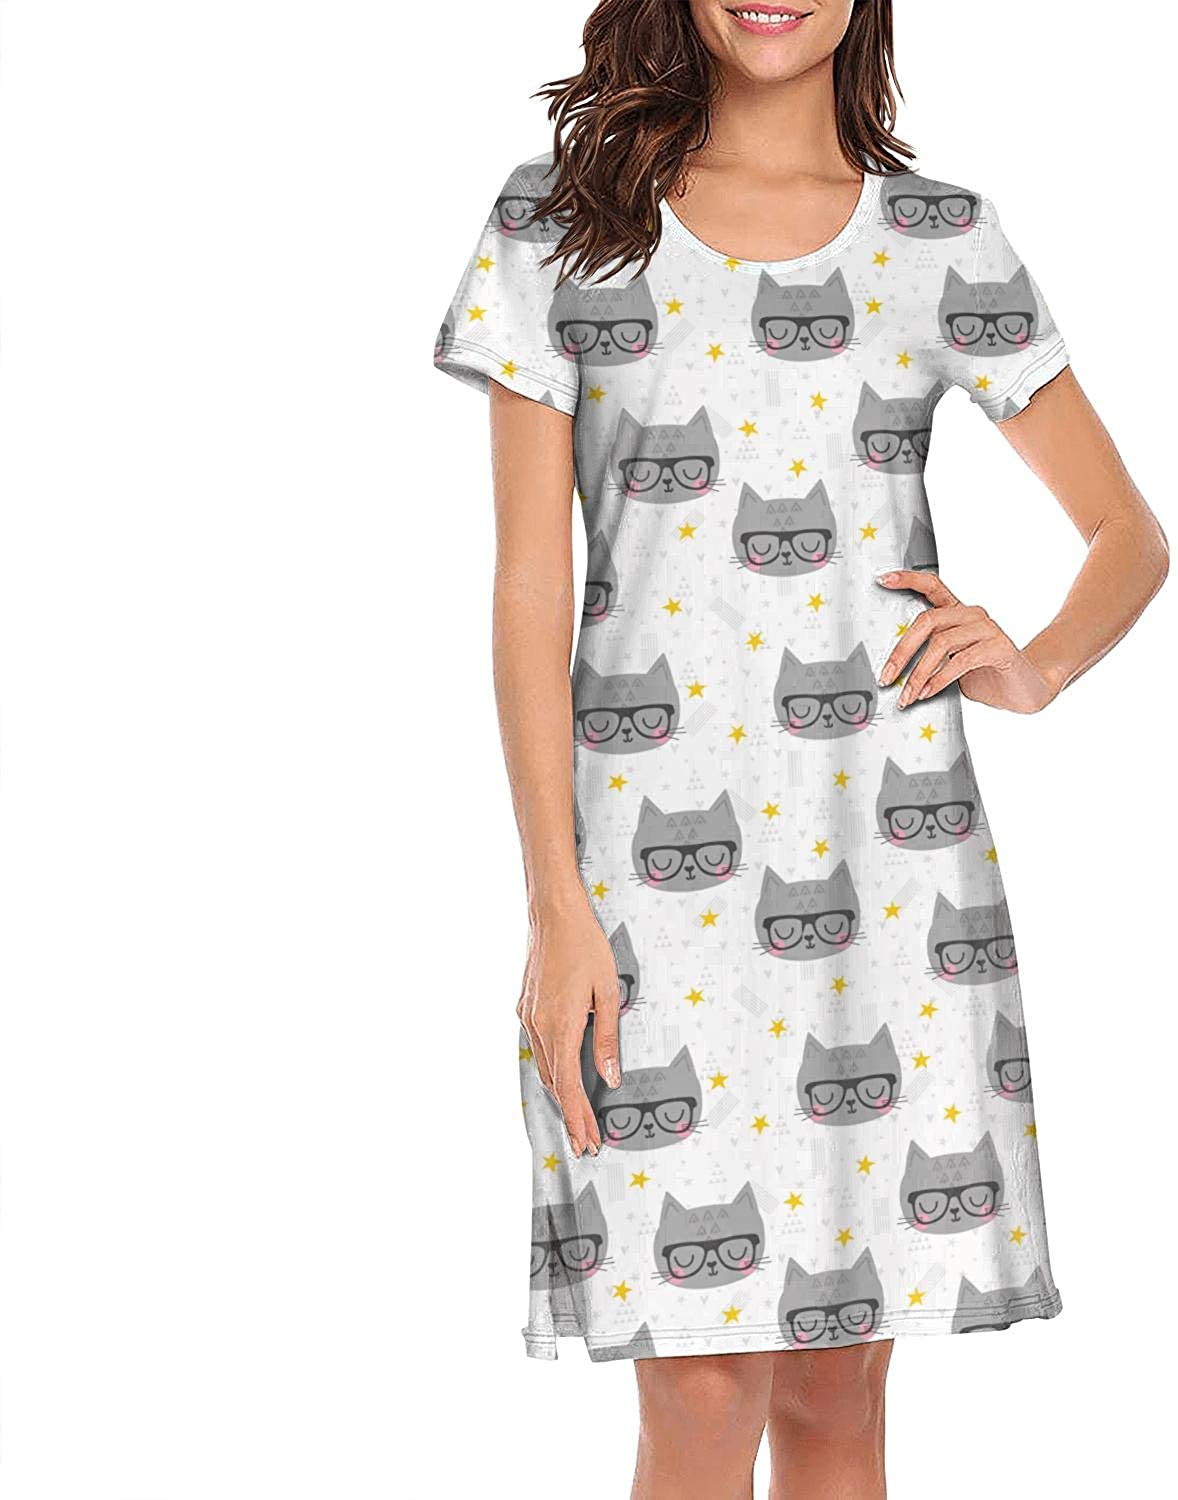 Cat Face Kitten MOEW Yellow Background Pretty WomenNighty Gown Short Sleeve Fashionable Nighty